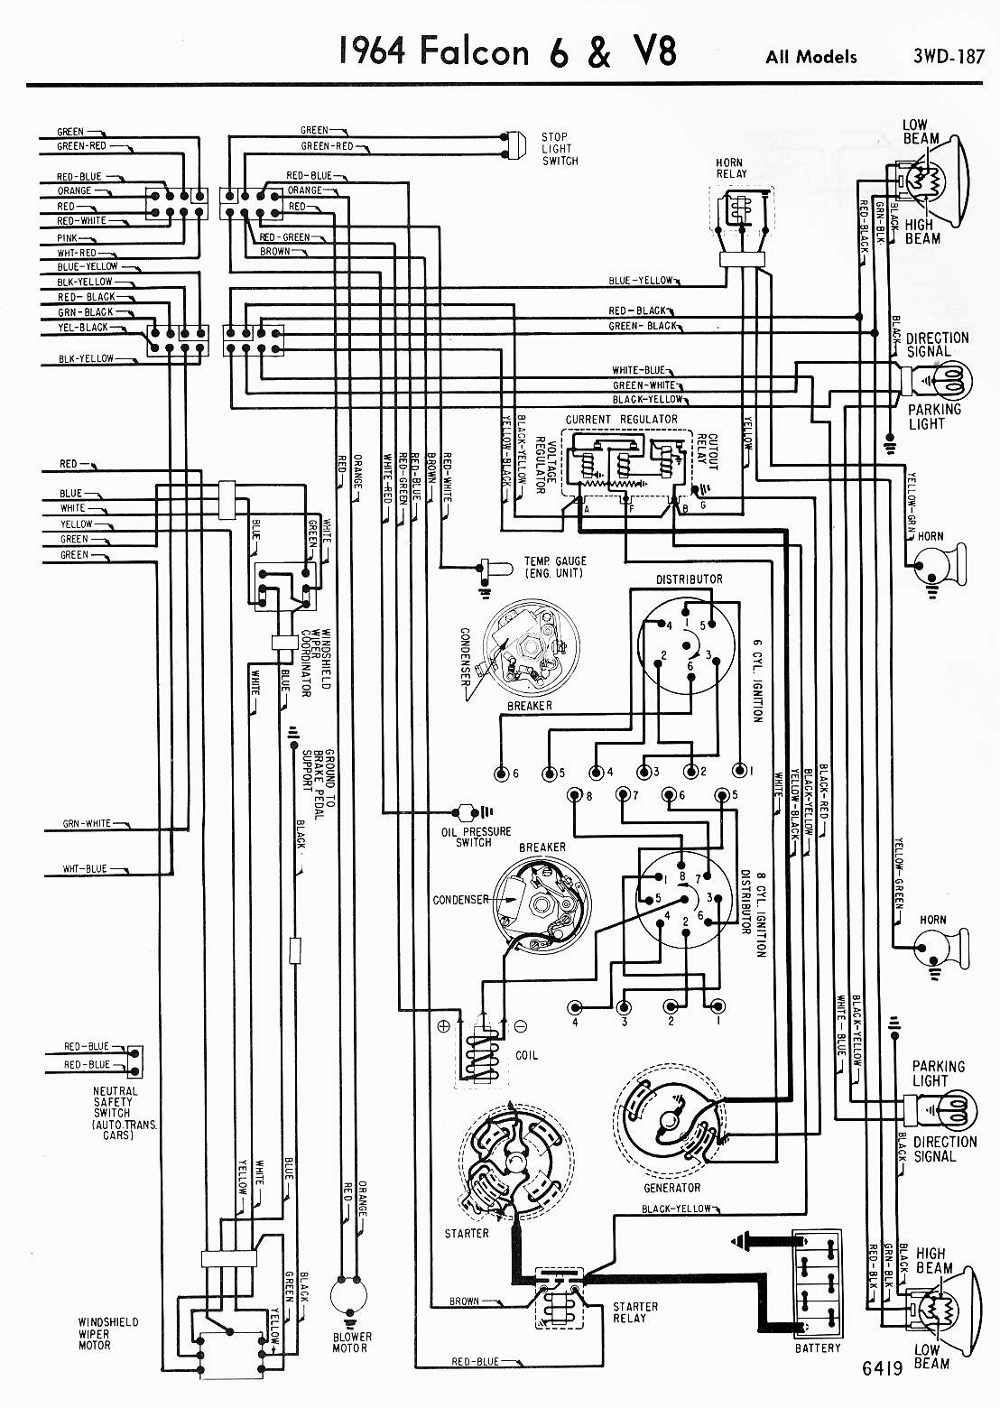 1964 ford falcon wiring diagram | wiring diagrams of 1964 ford 6 and v8 falcon all models part 2